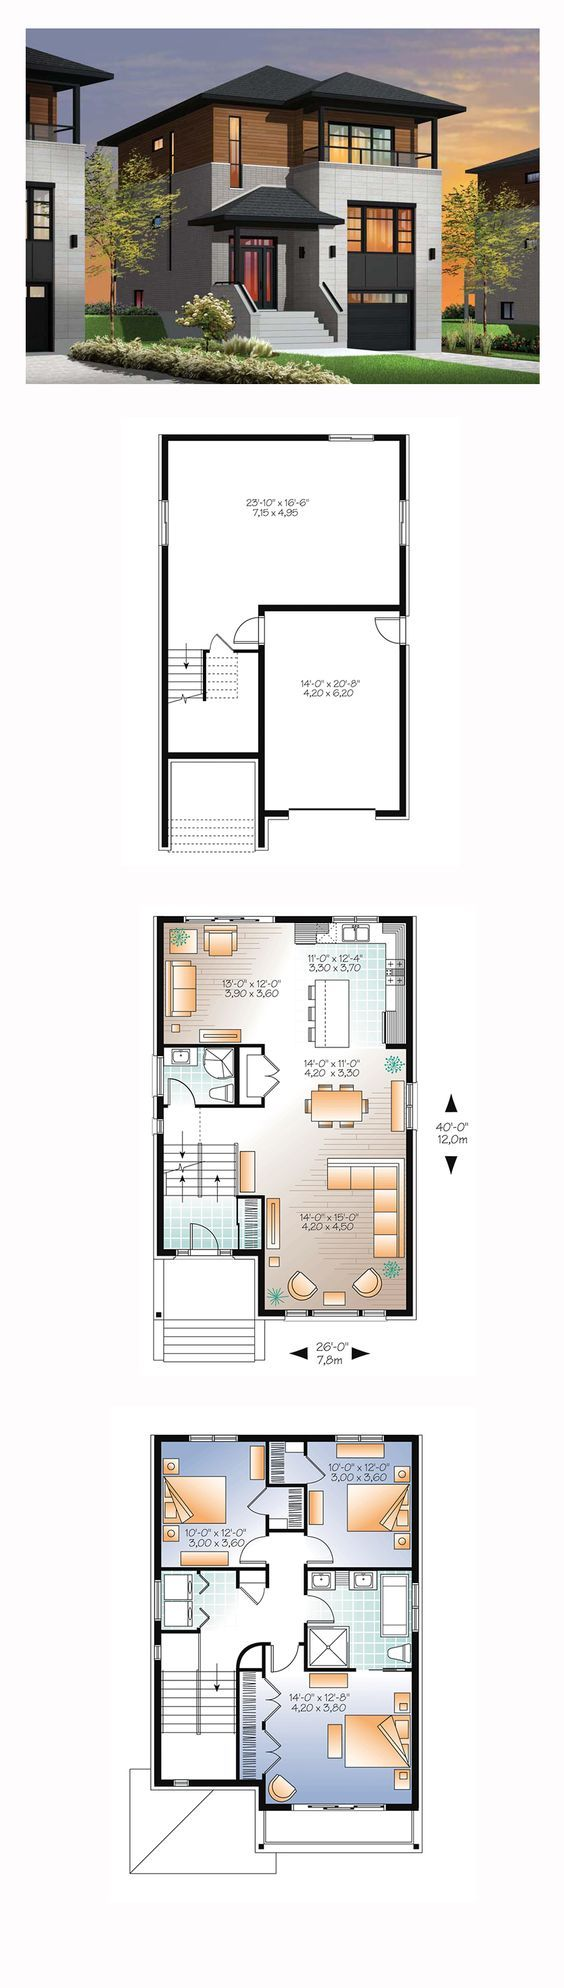 Modern House Plan 76362 | Total Living Area: 1883 sq. ft., 3 bedrooms and 2 bathrooms. #modernhome: